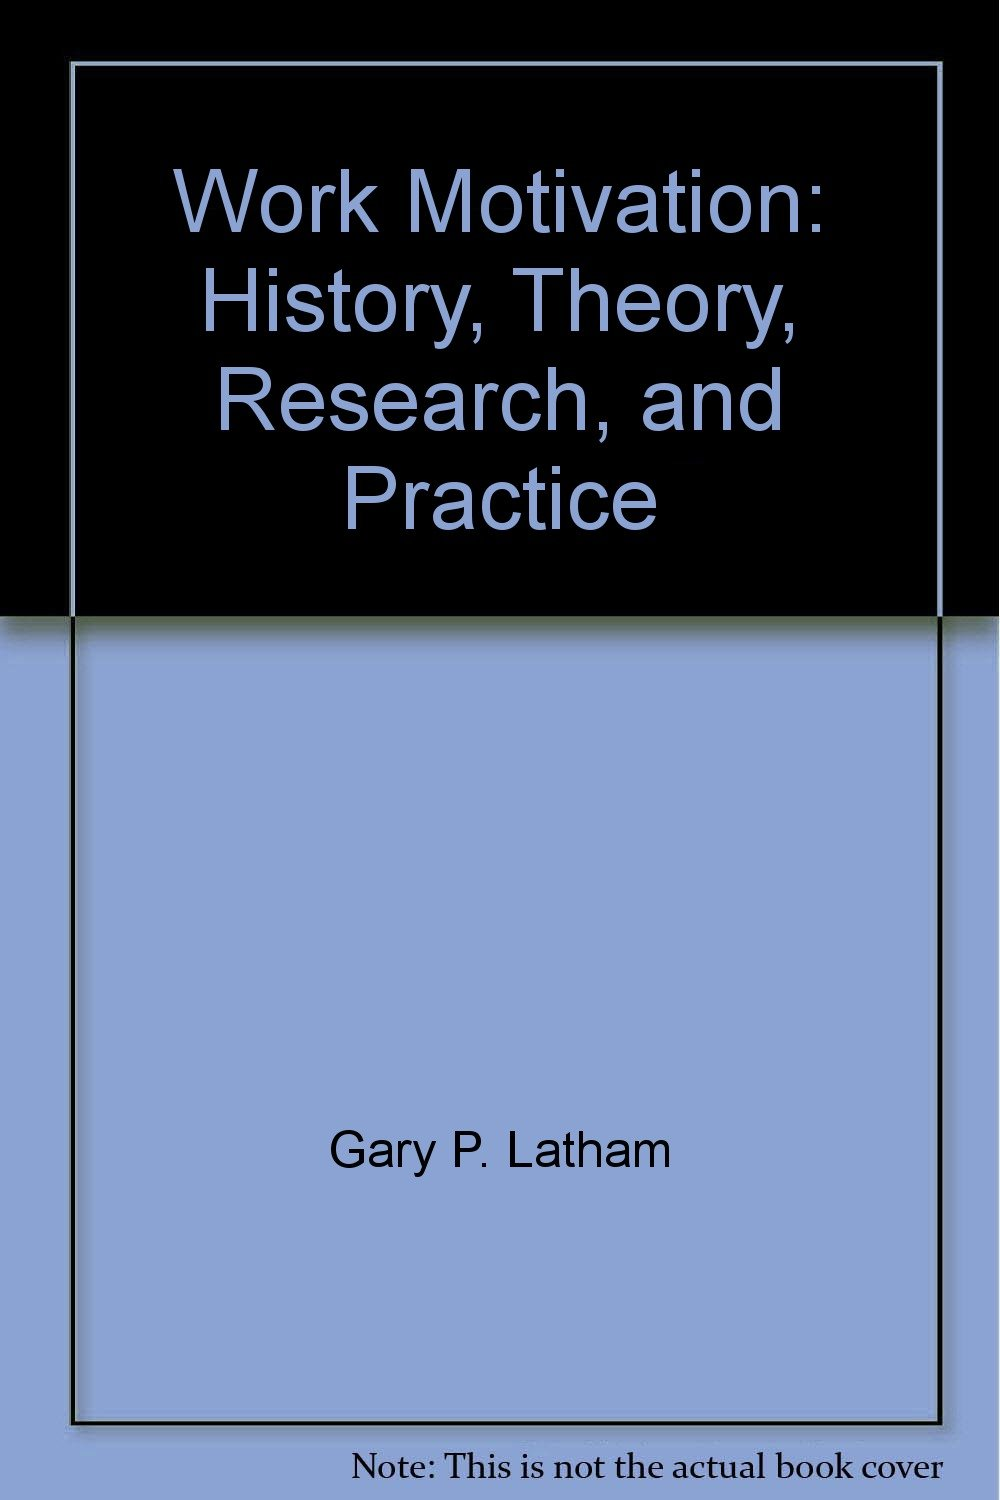 HISTORY OF MOTIVATION THEORY DOWNLOAD